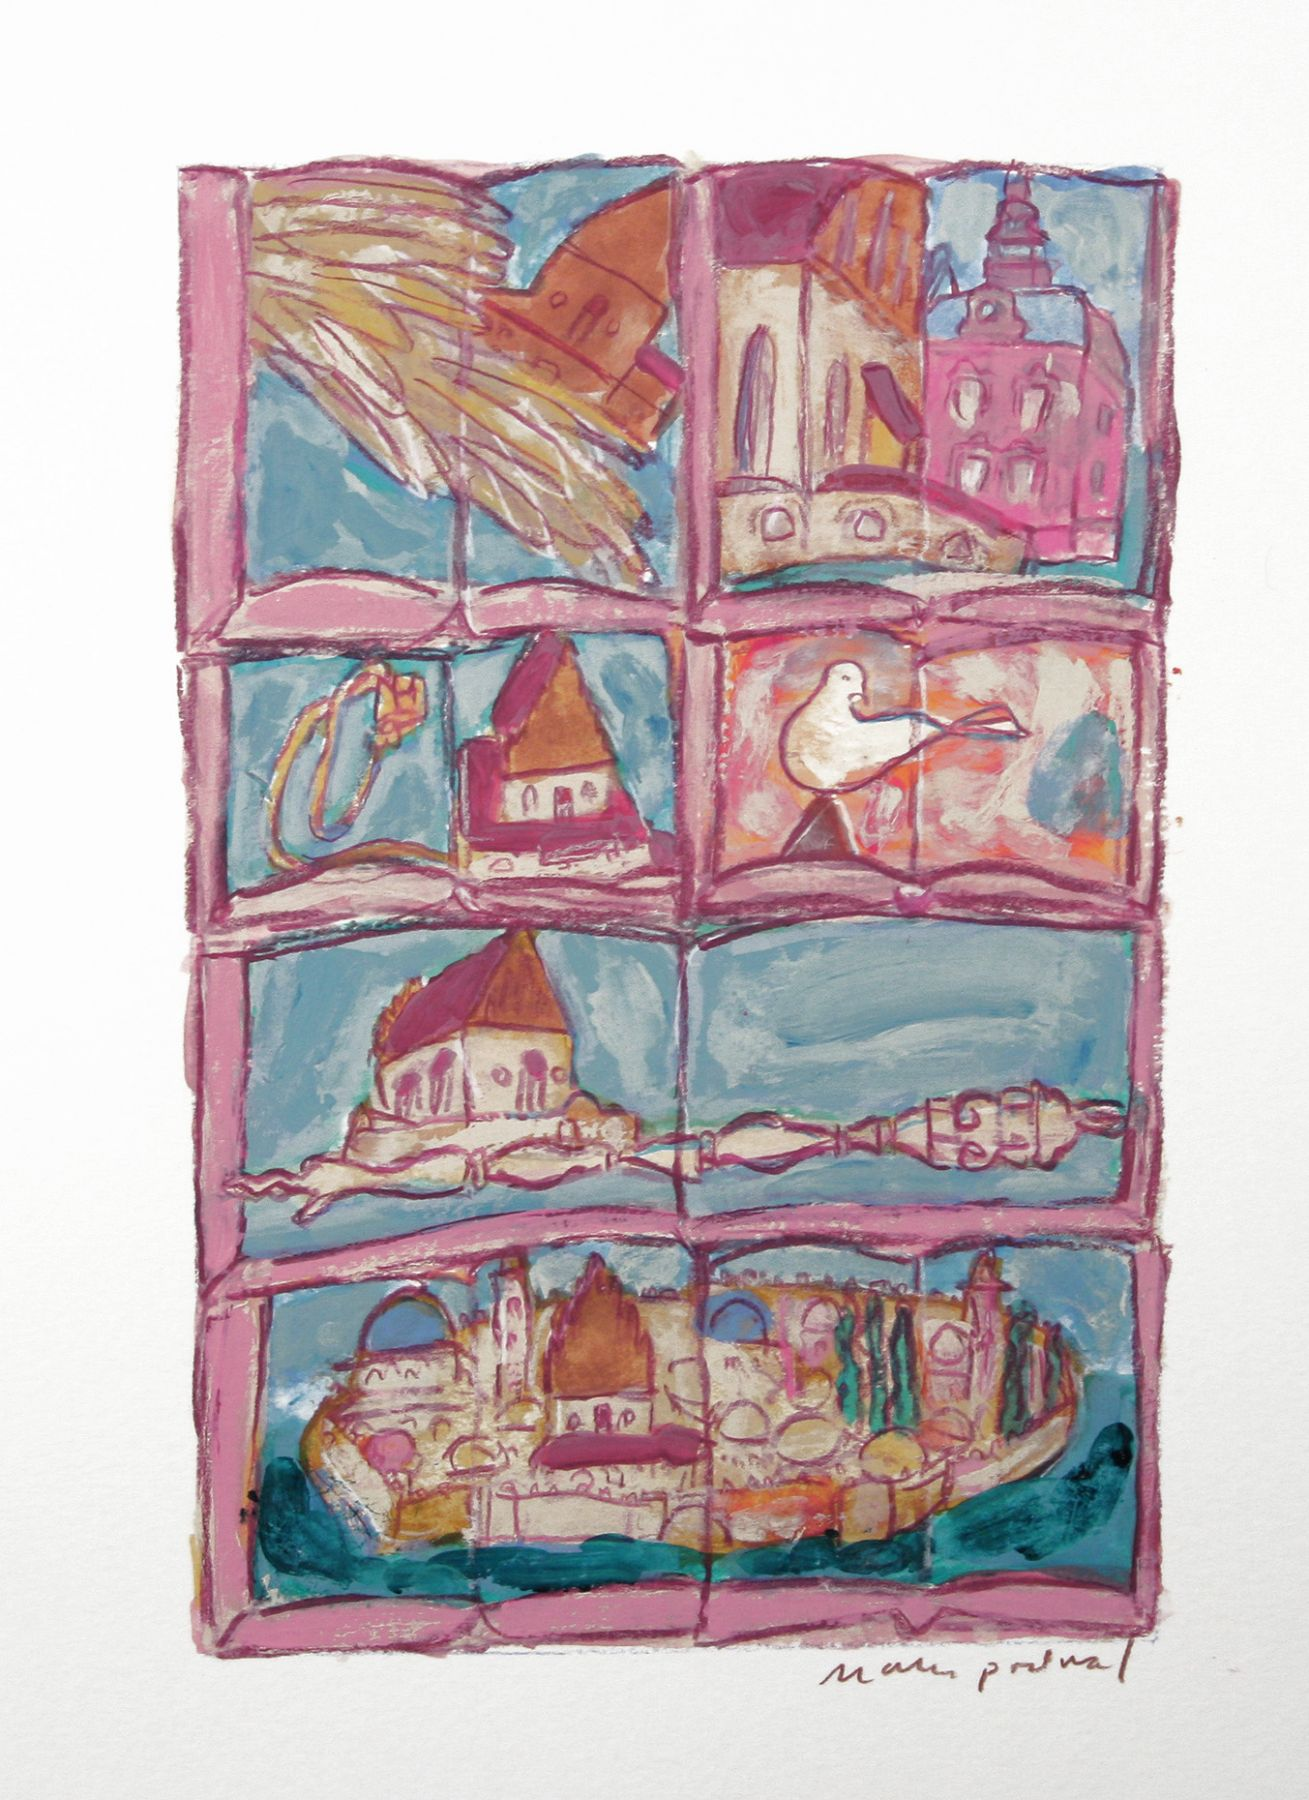 Mark Podwal, A synagogue with as many stories as stones (SOLD), 2008, acrylic, gouache and colored pencil on paper, 9 3/4 x 6 3/4 inches